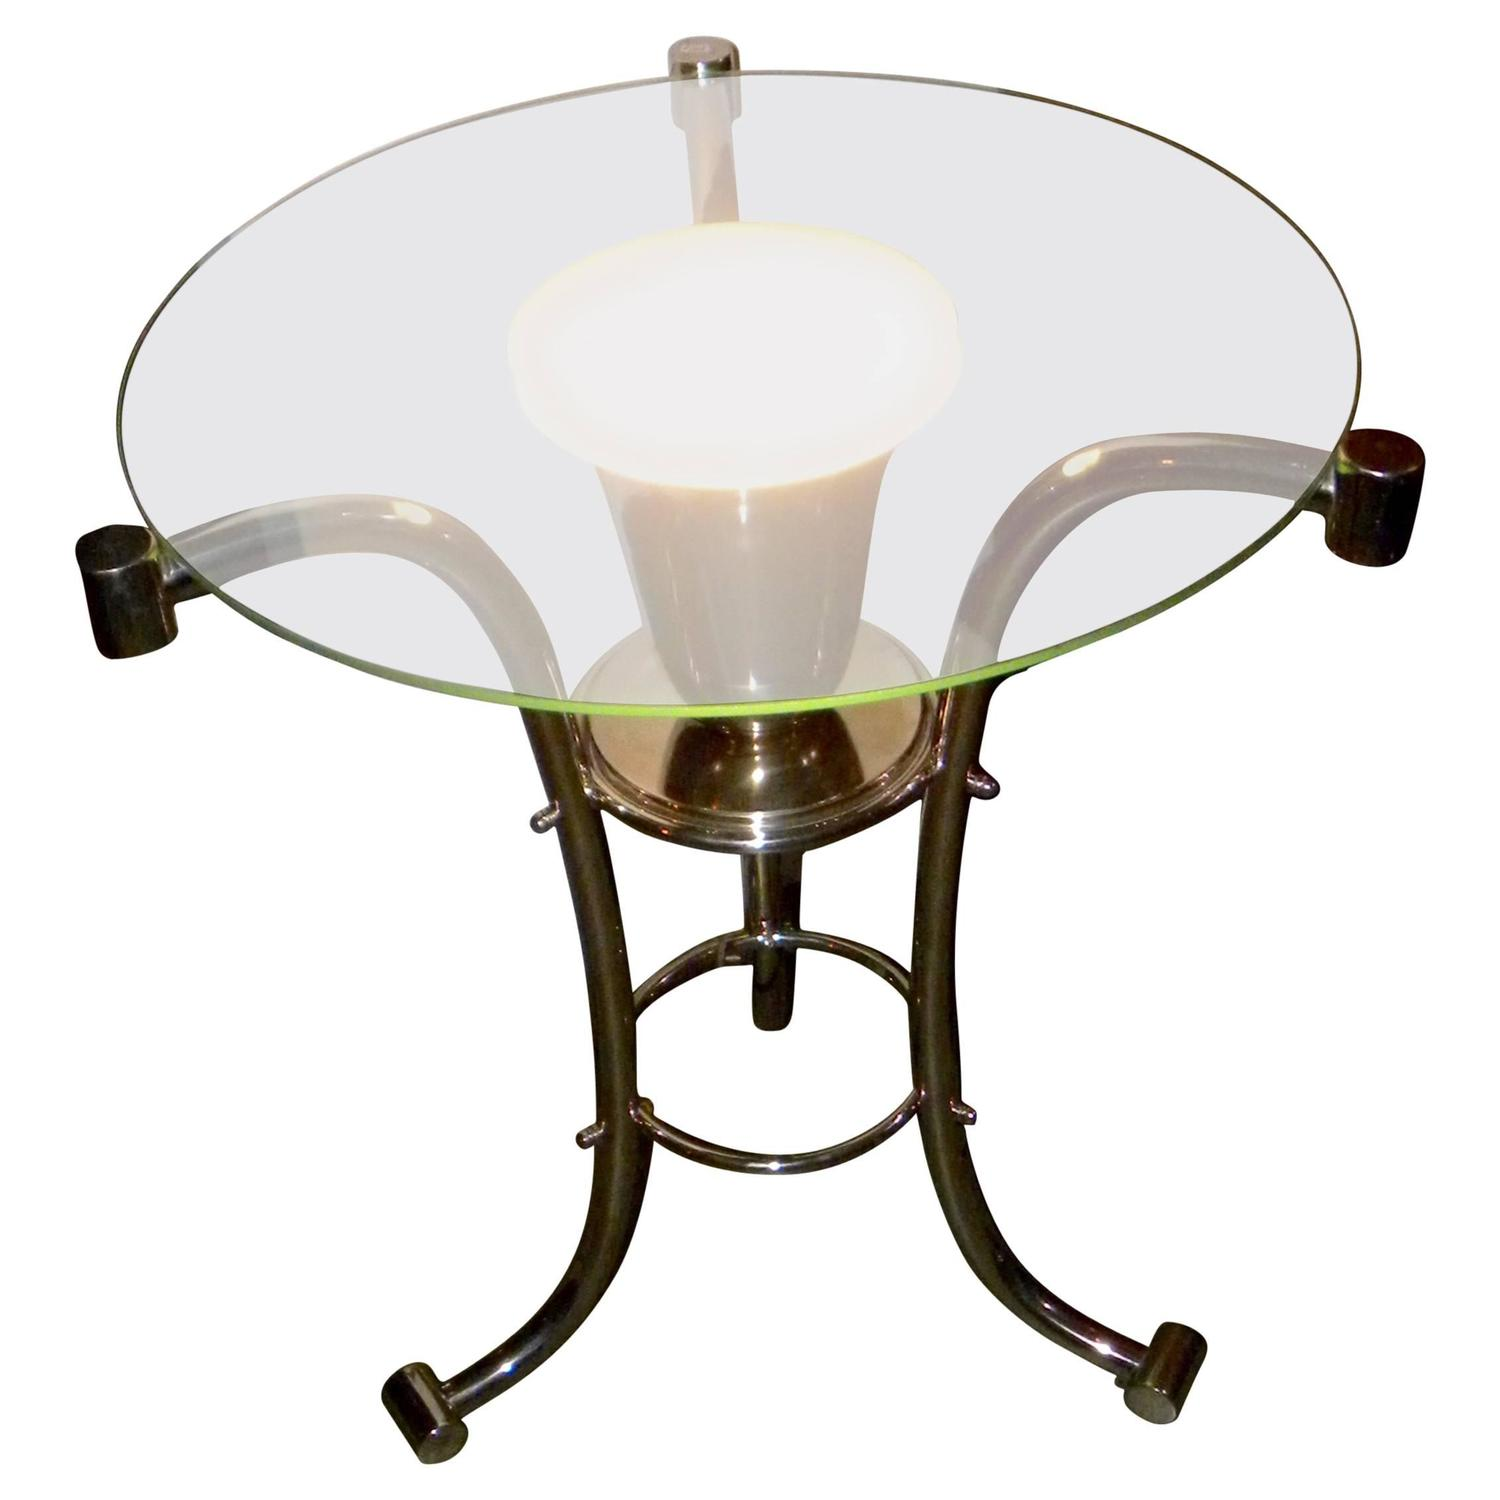 Art Deco Glass Side Table With Uplight For Sale At 1stdibs